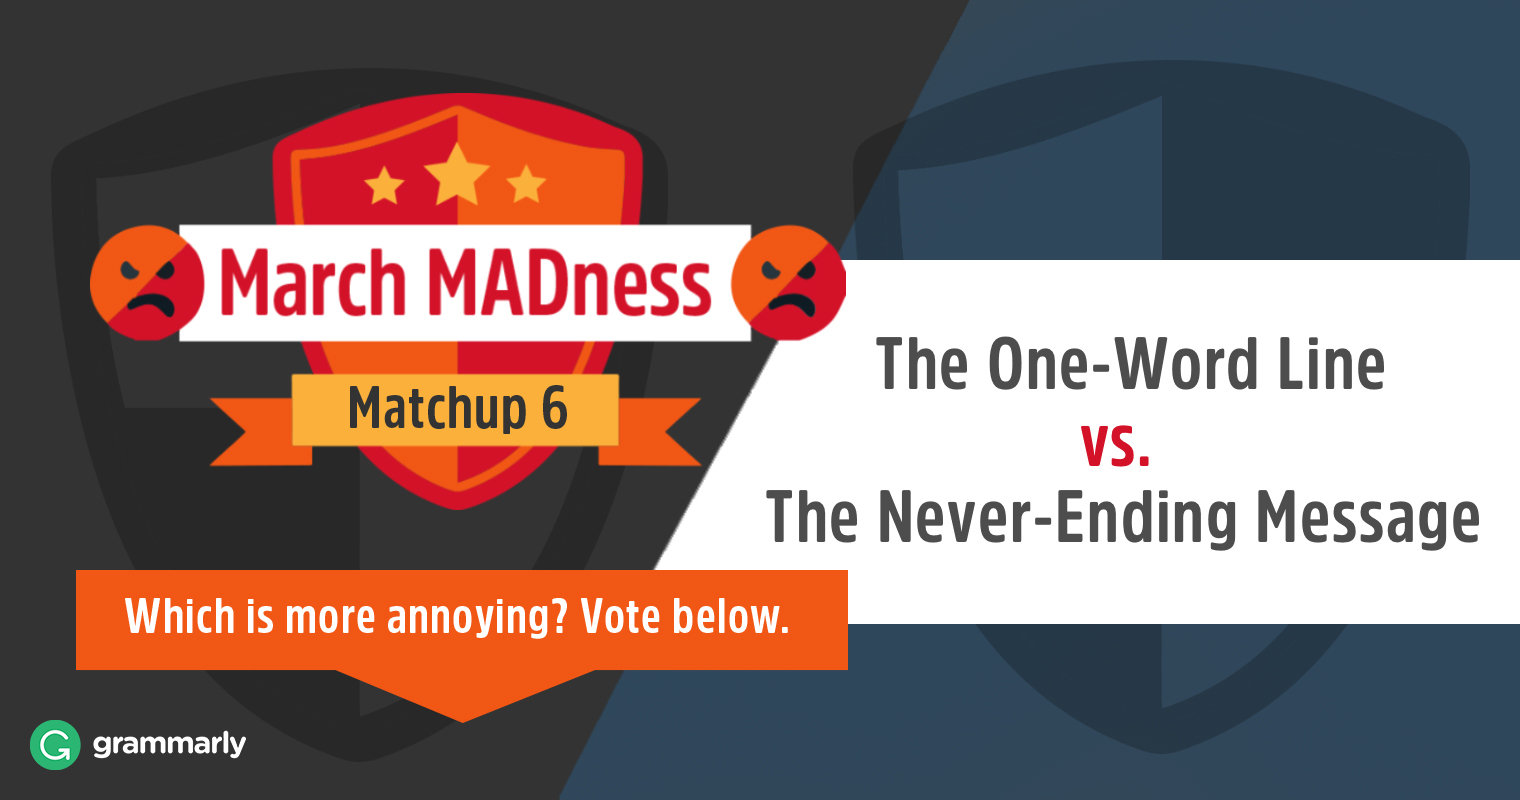 March MADness: The One-Word Line vs. The Never-Ending Message